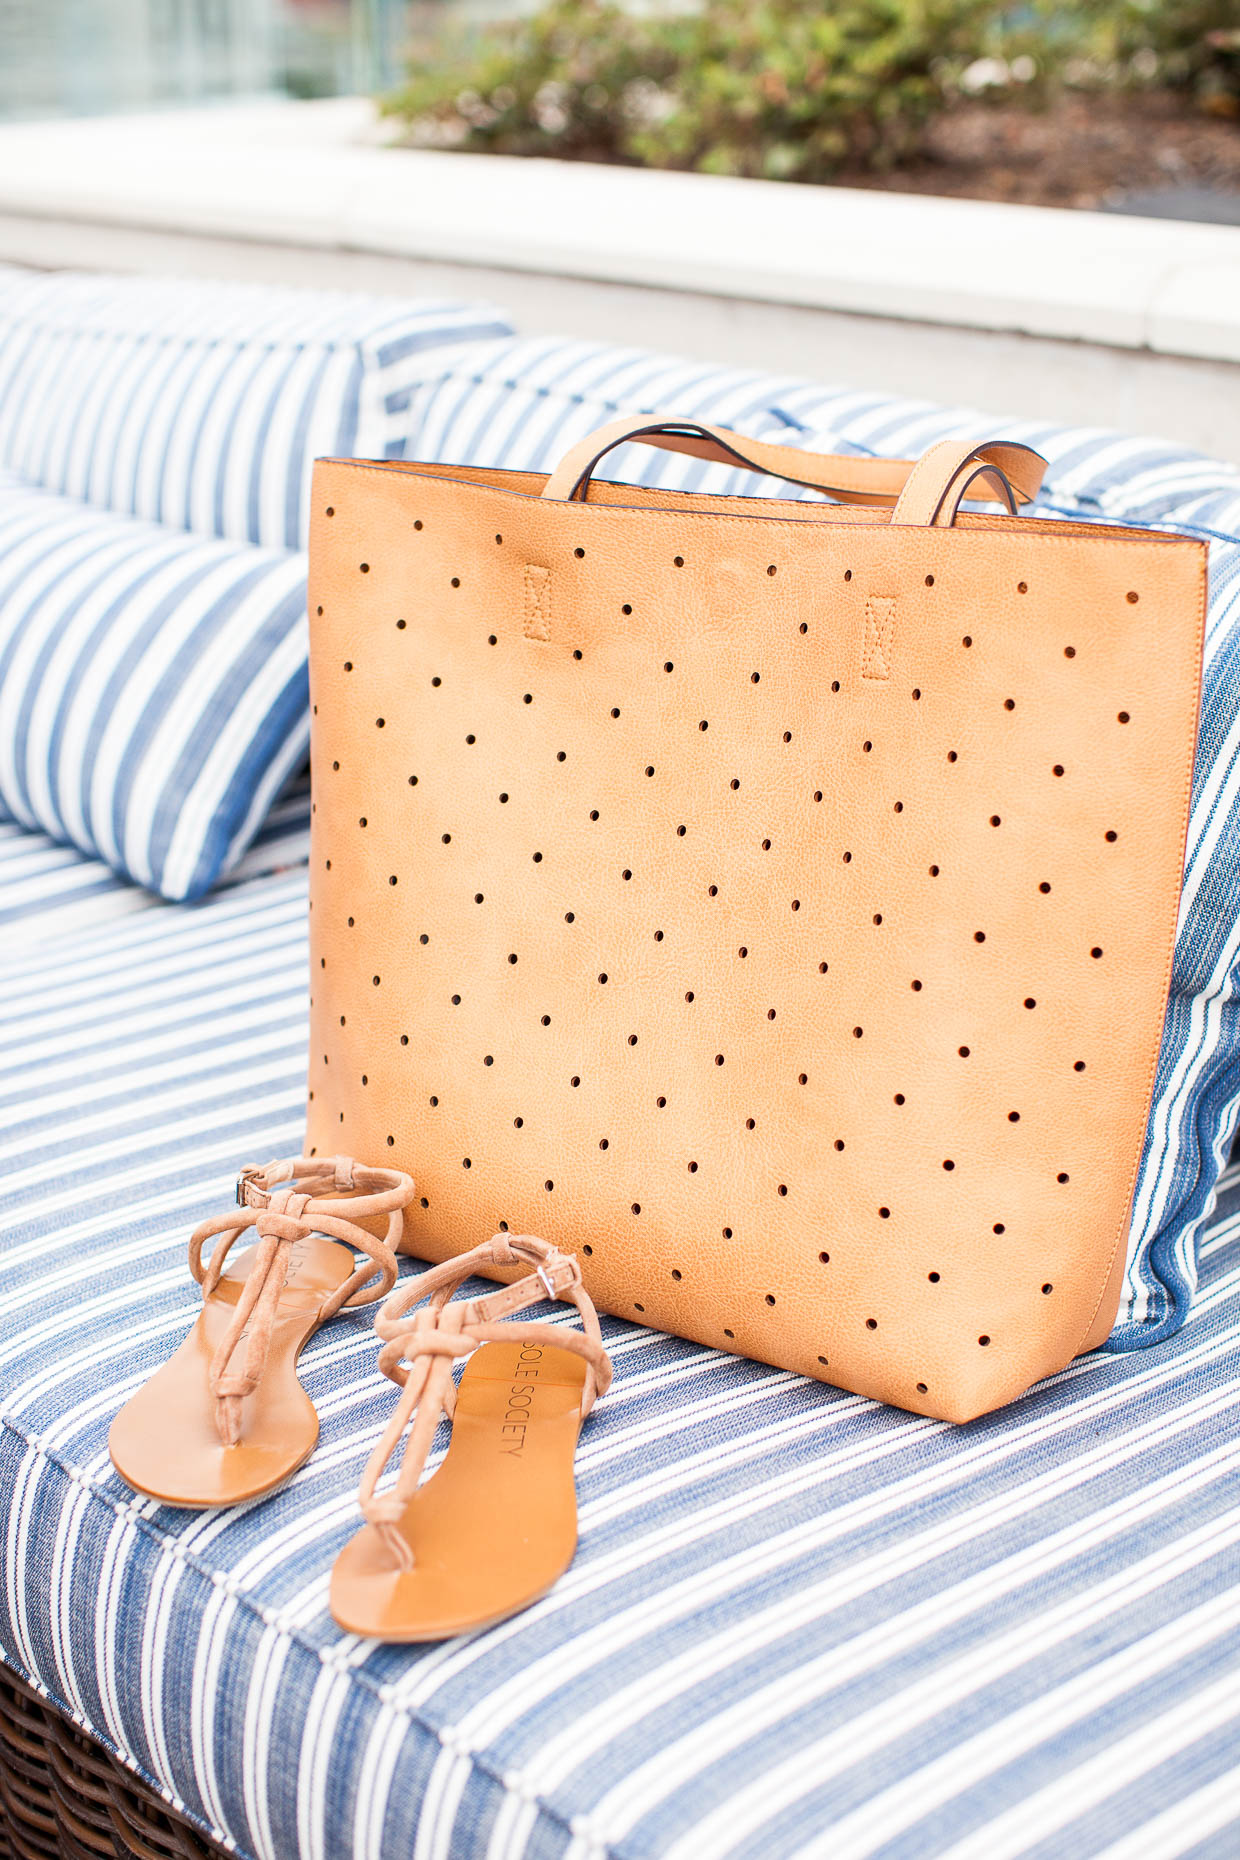 Fashion Blogger The Darling Detail is taking the Sole Society Farrow Tote and Topaz Sandals to the pool.